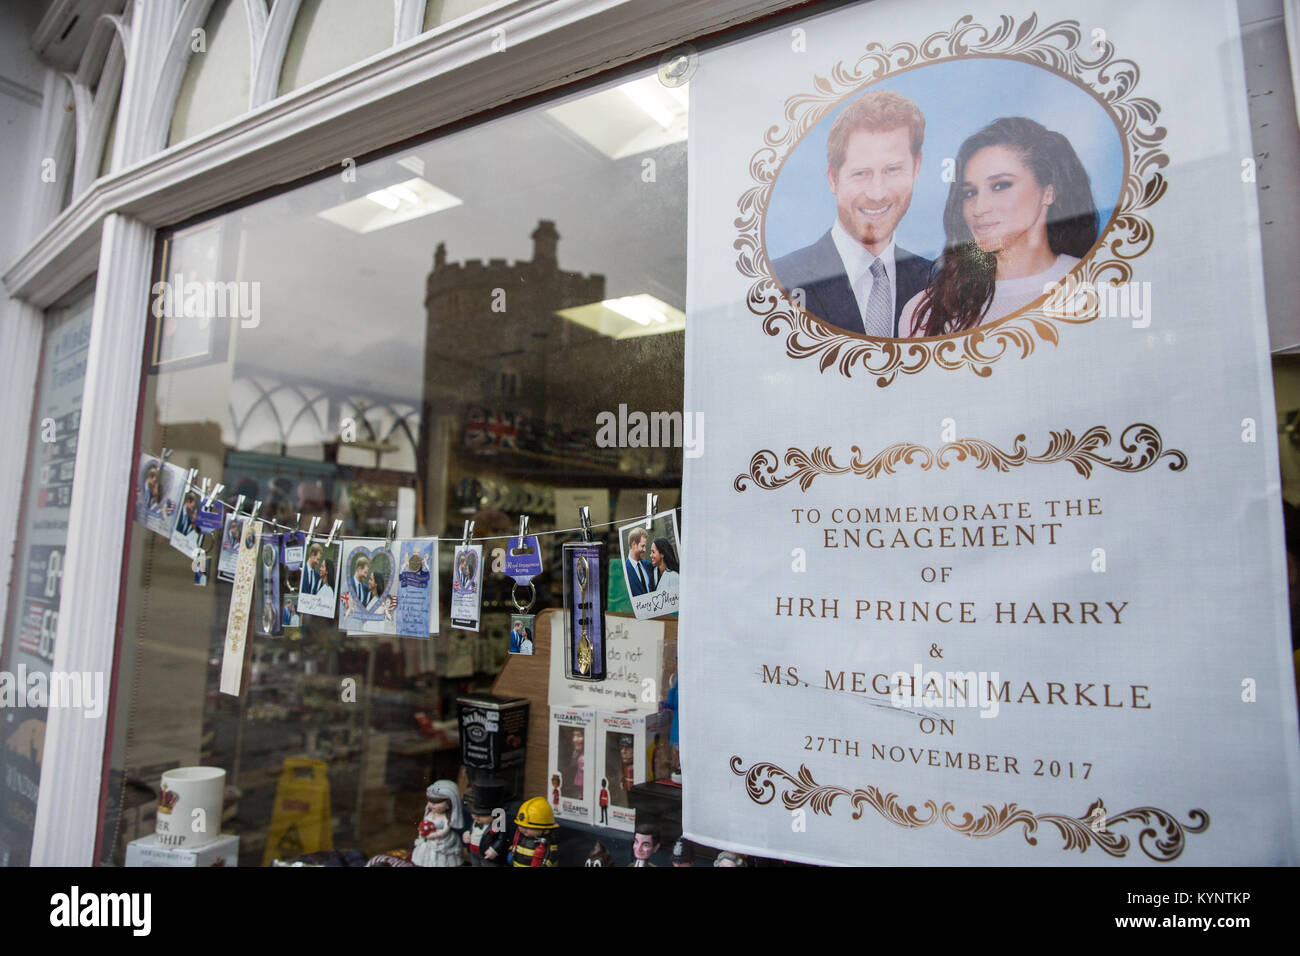 Windsor, UK. 15th Jan, 2018. Mementos featuring images of Prince Harry and Meghan Markle have begun to appear in - Stock Image